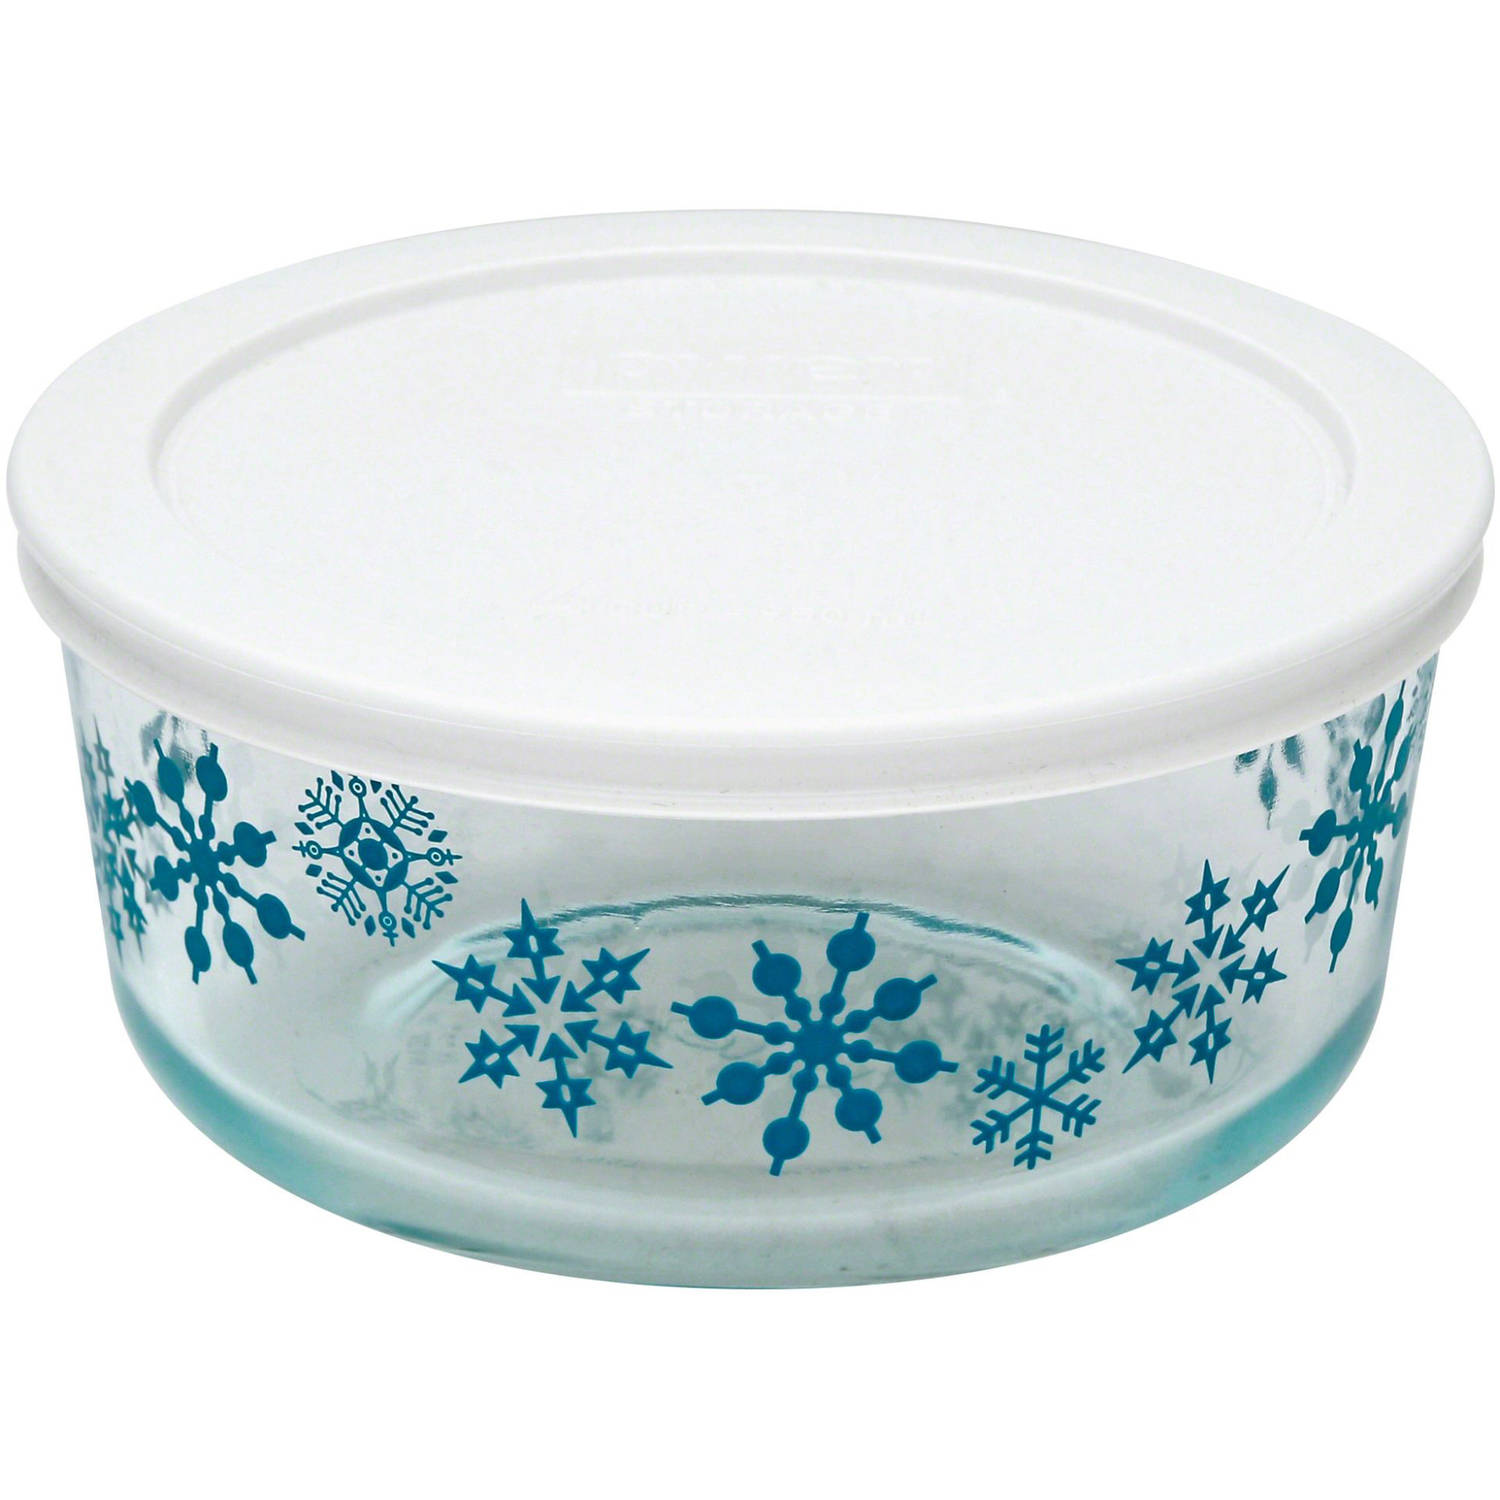 Pyrex Simply Store Holiday 4-Cup Round Storage Set with Plastic Covers, Set of 4, Multiple Patterns